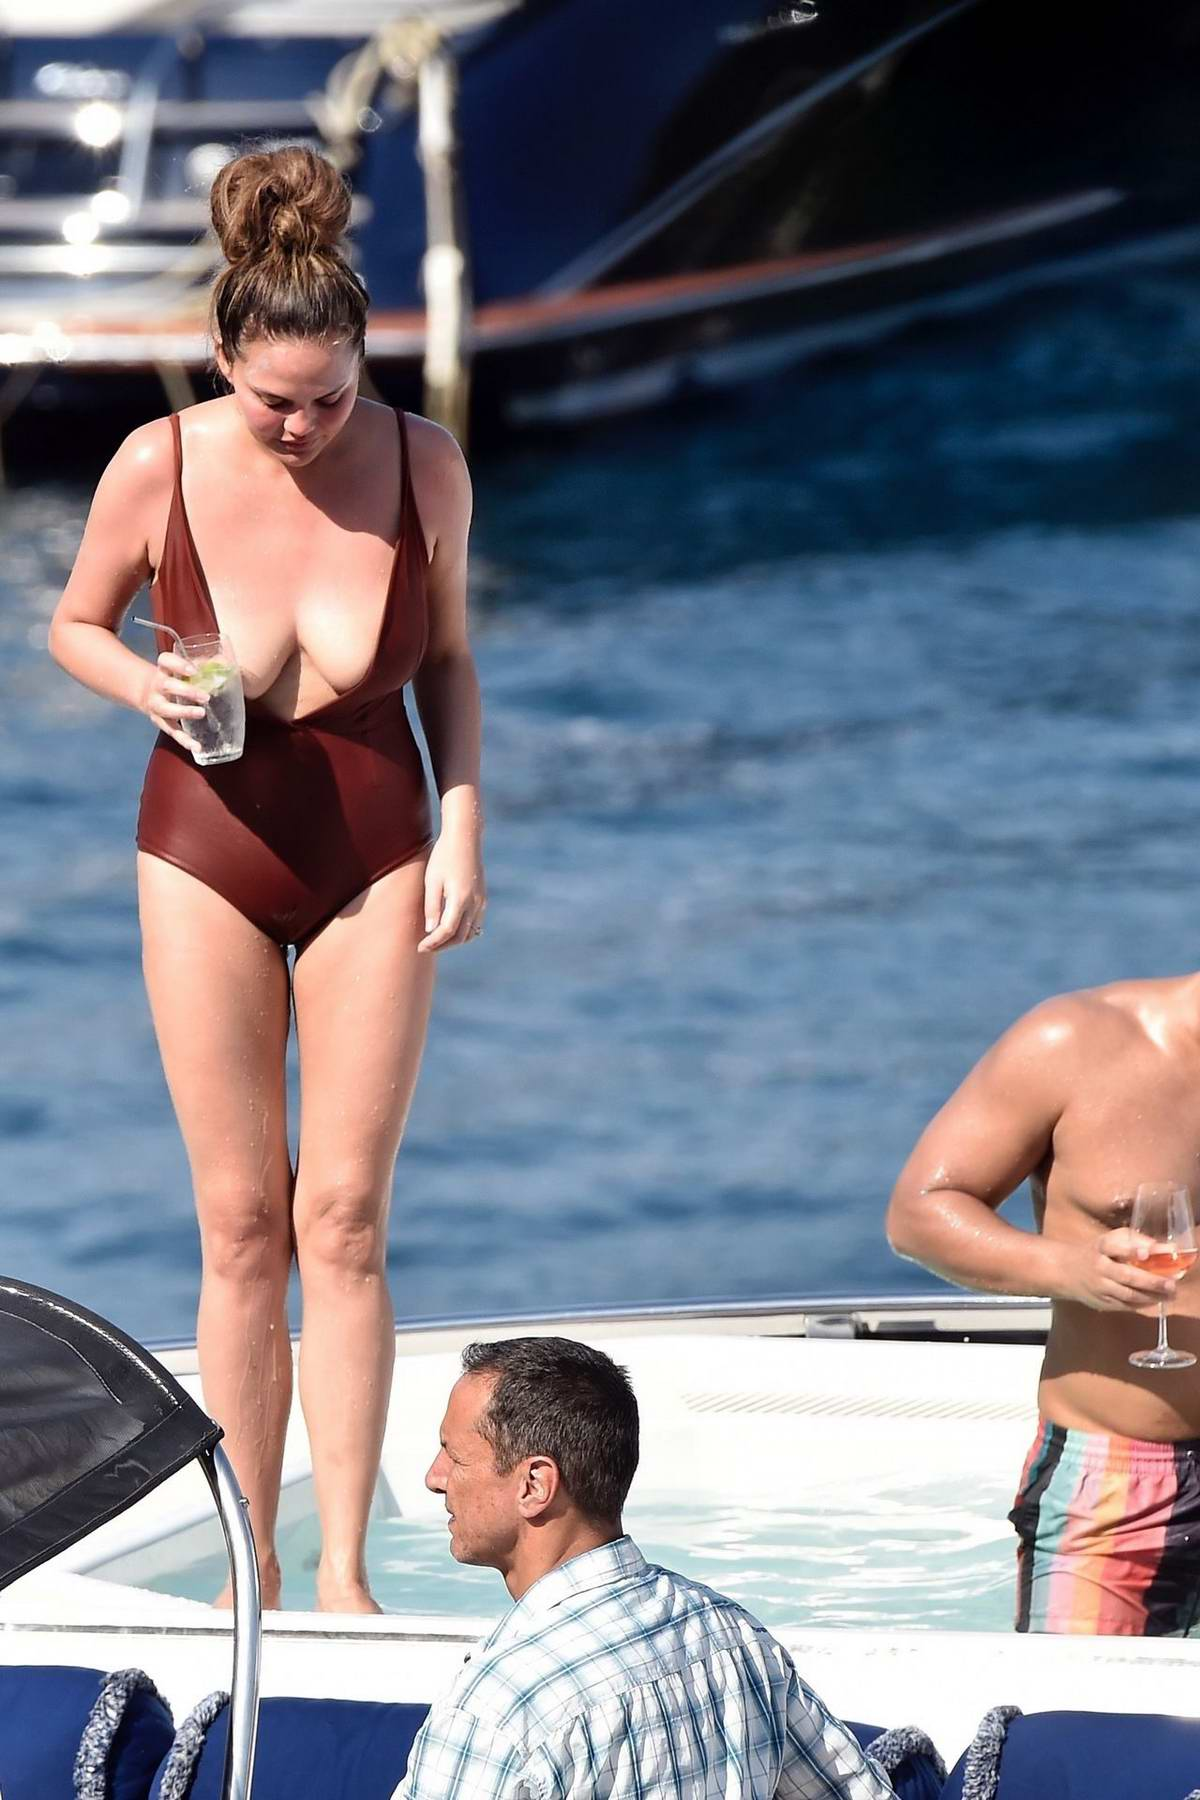 Chrissy Teigen relaxes on a yacht in a brown swimsuit while on vacation in Portofino, Italy